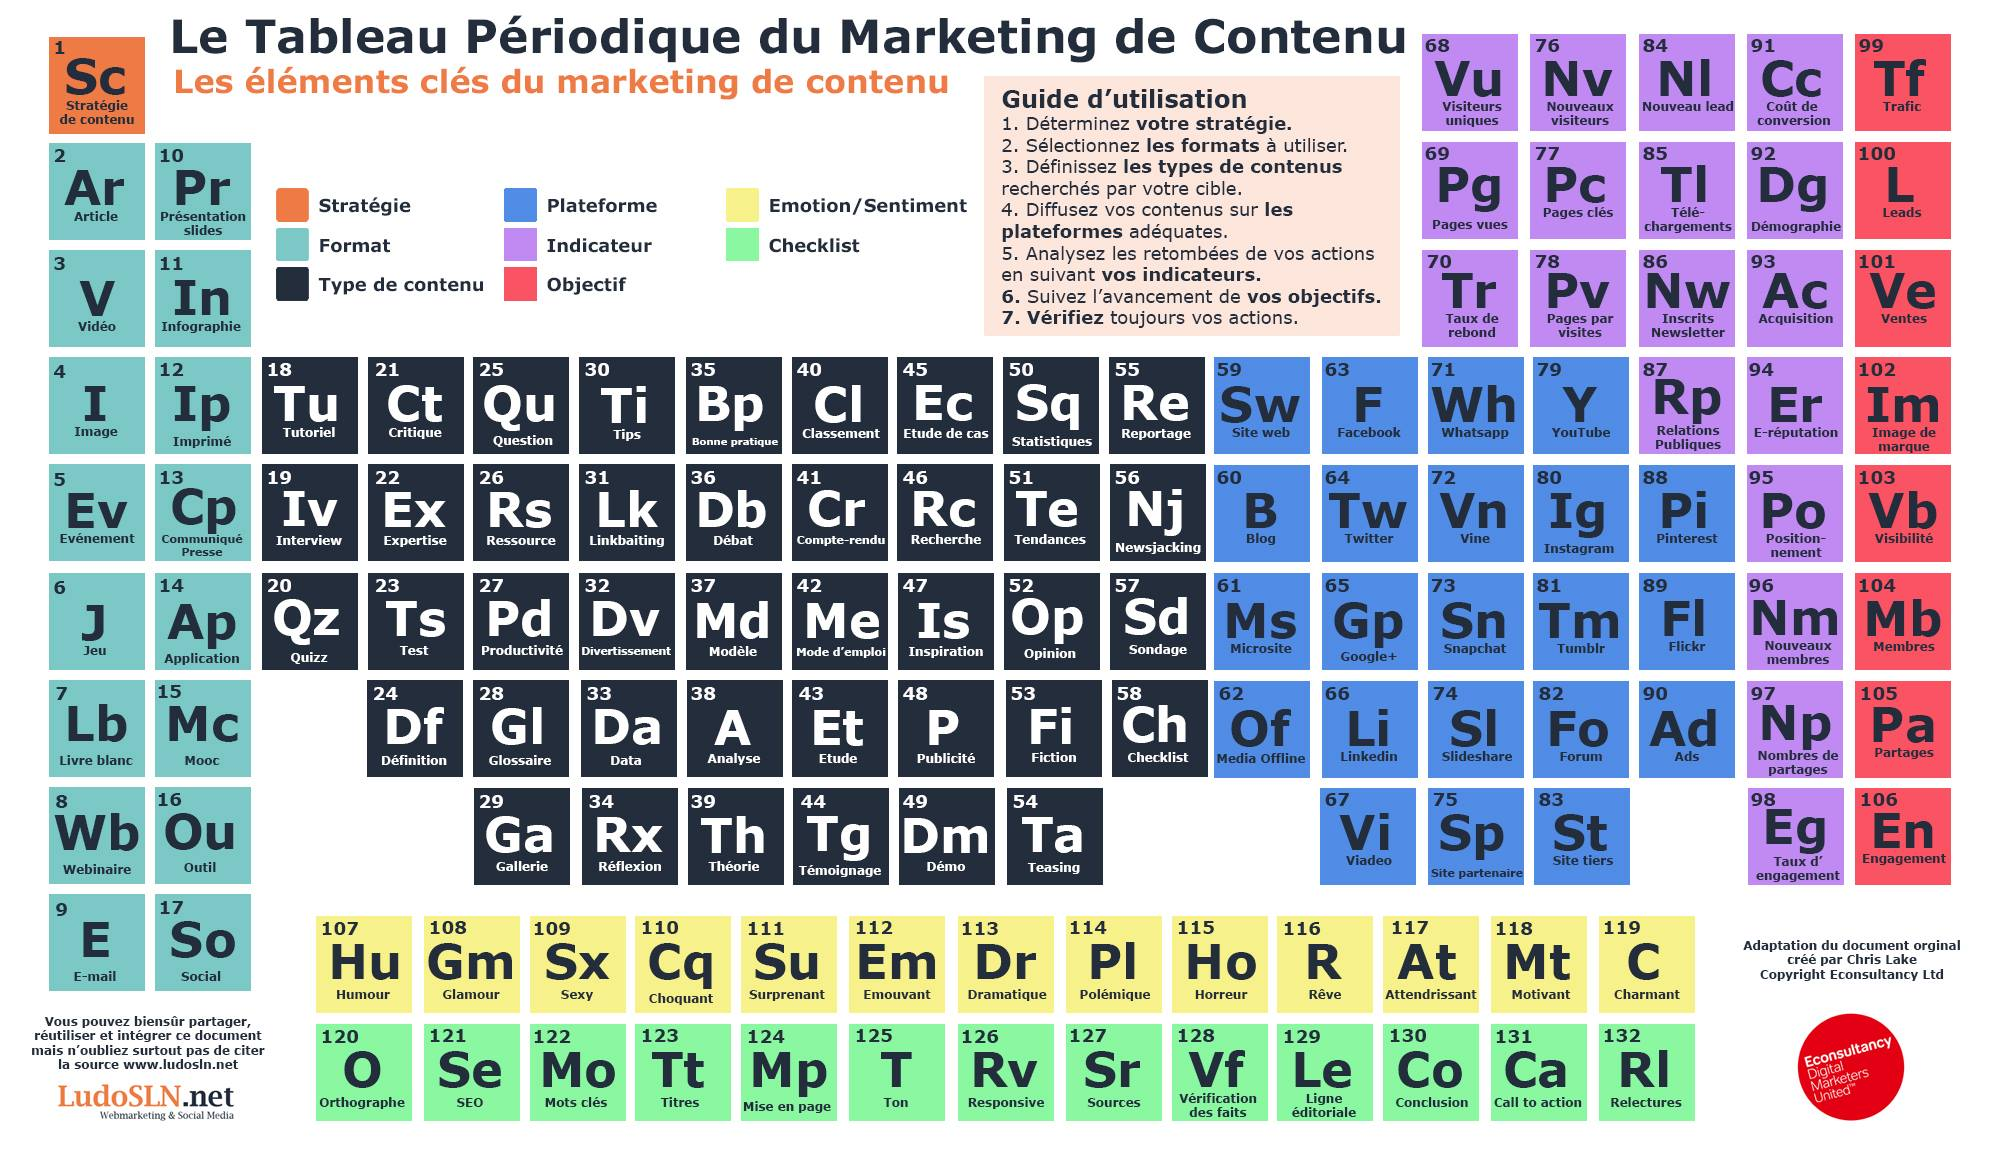 tableau periodoque du marketing de contenu _ source LudoSLN.net